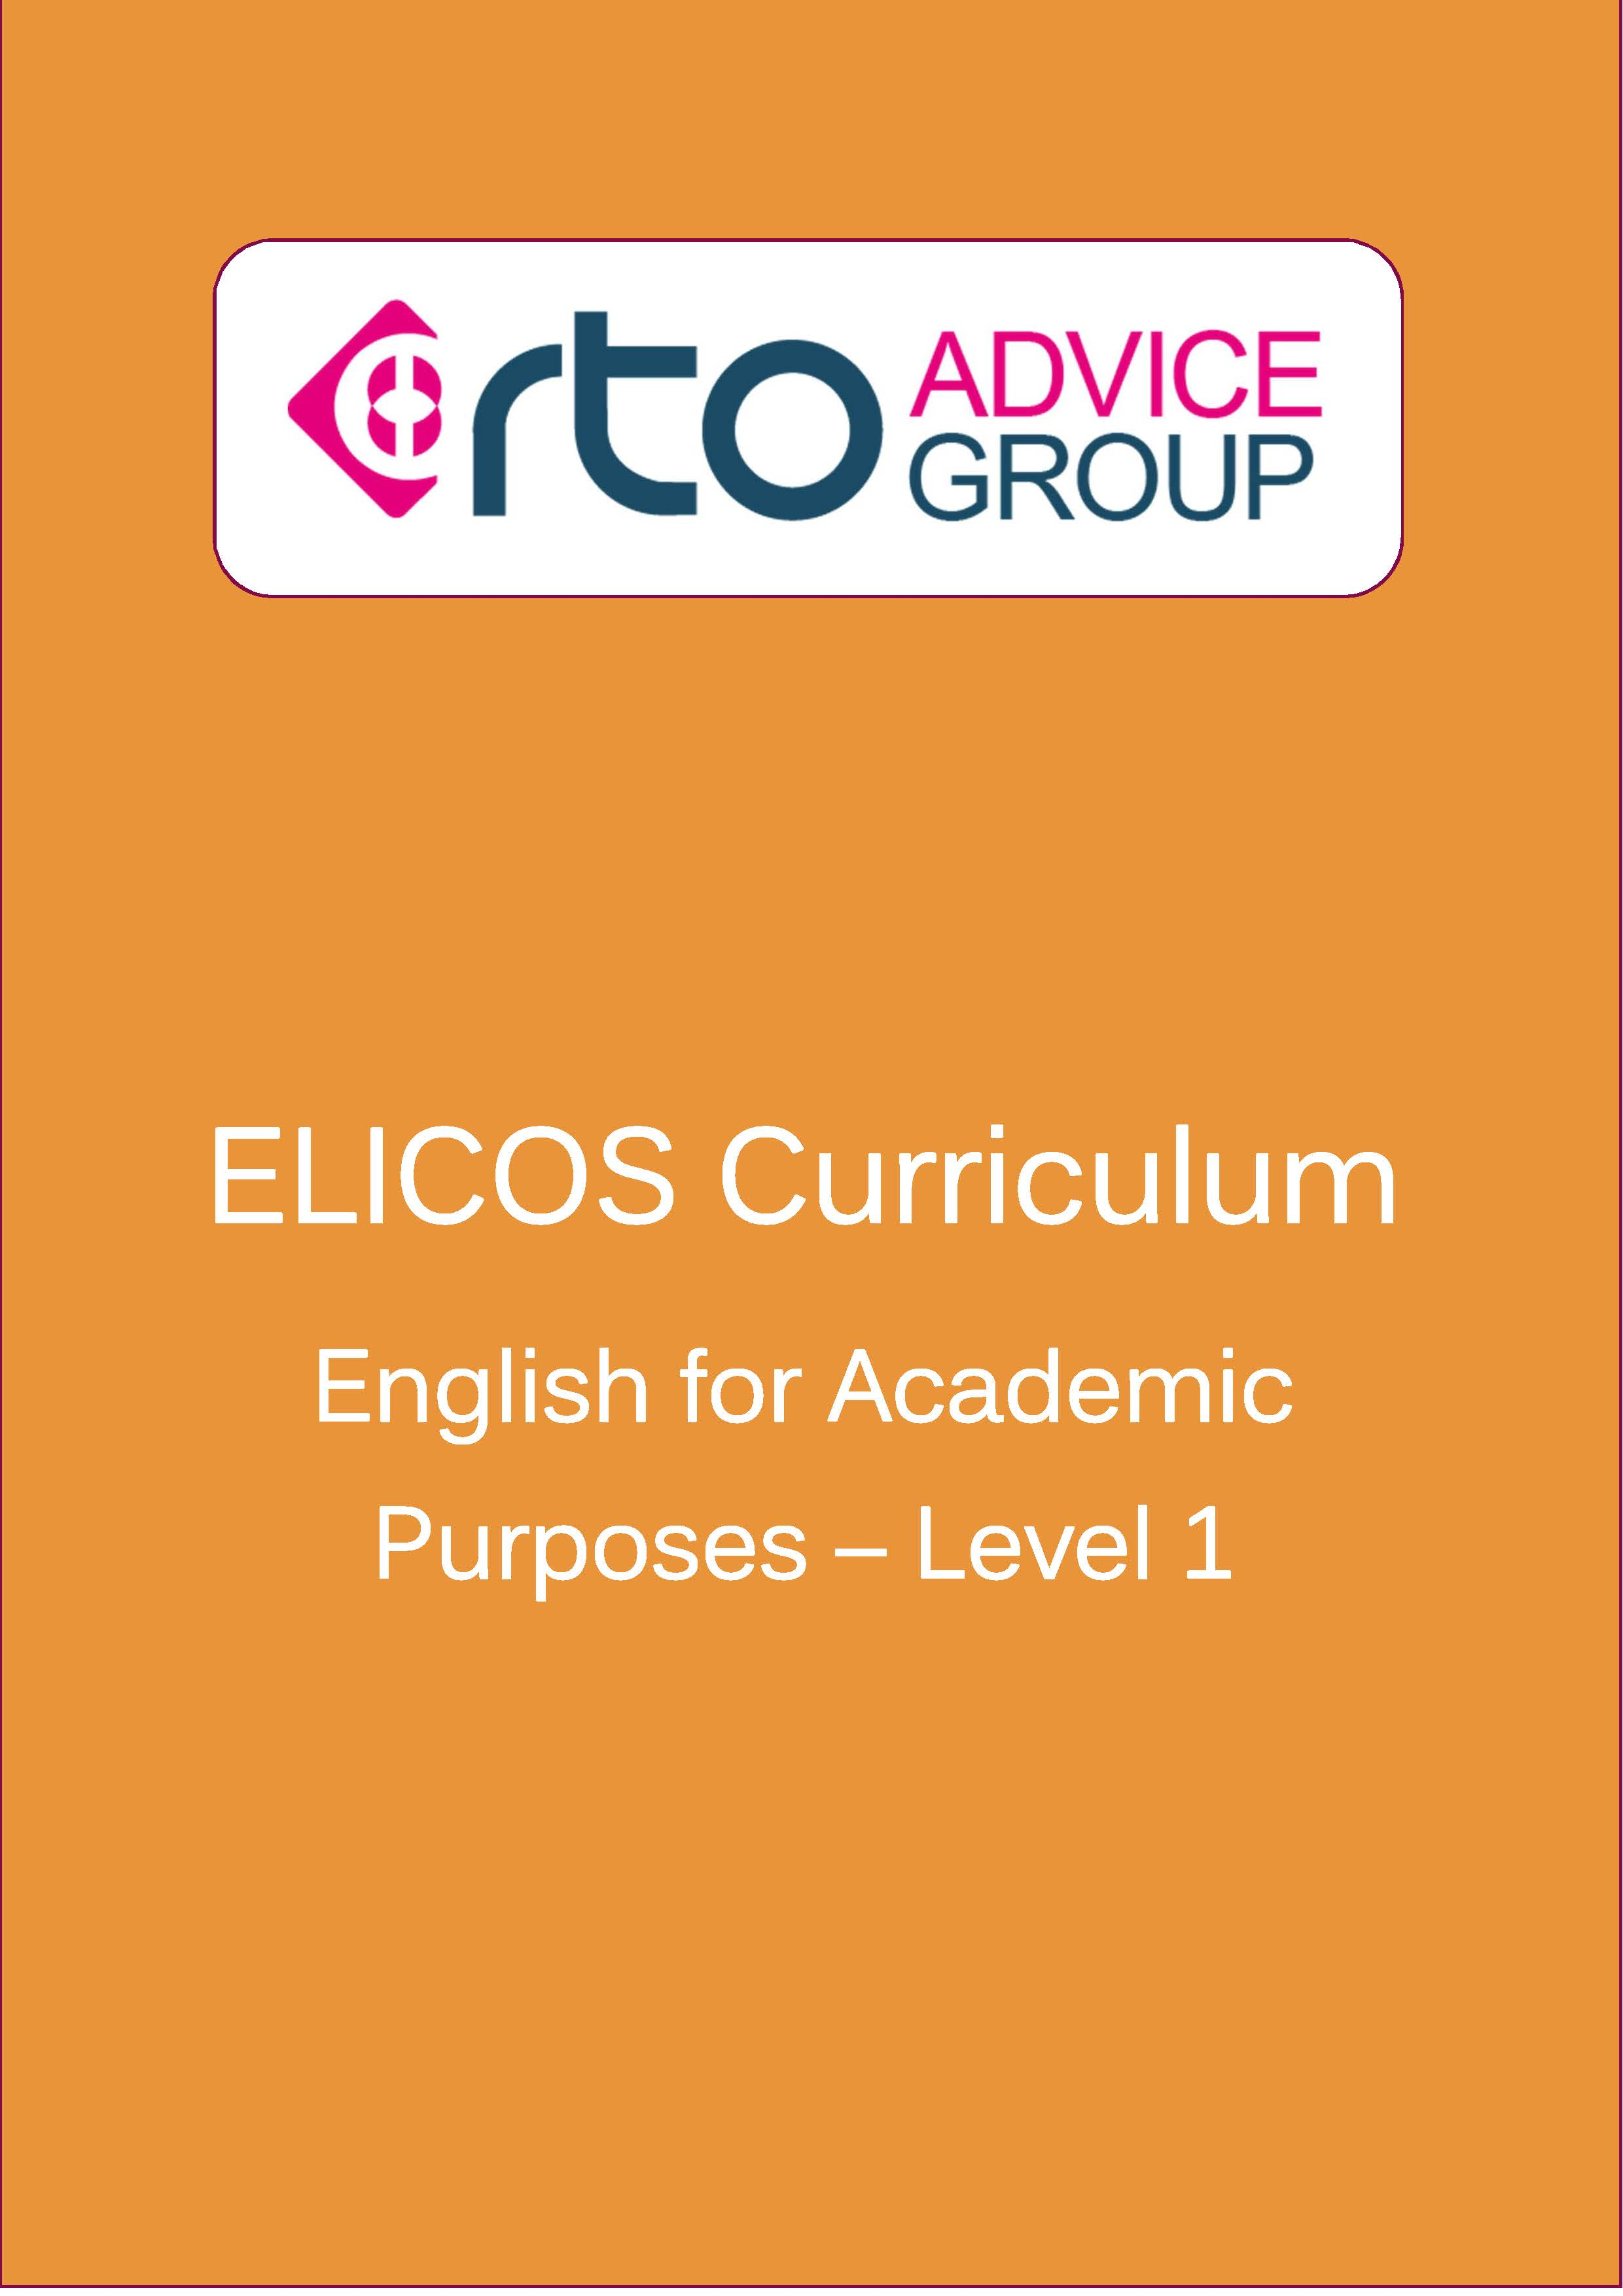 ELICOS Curriculum – English For Academic Purposes Level 1